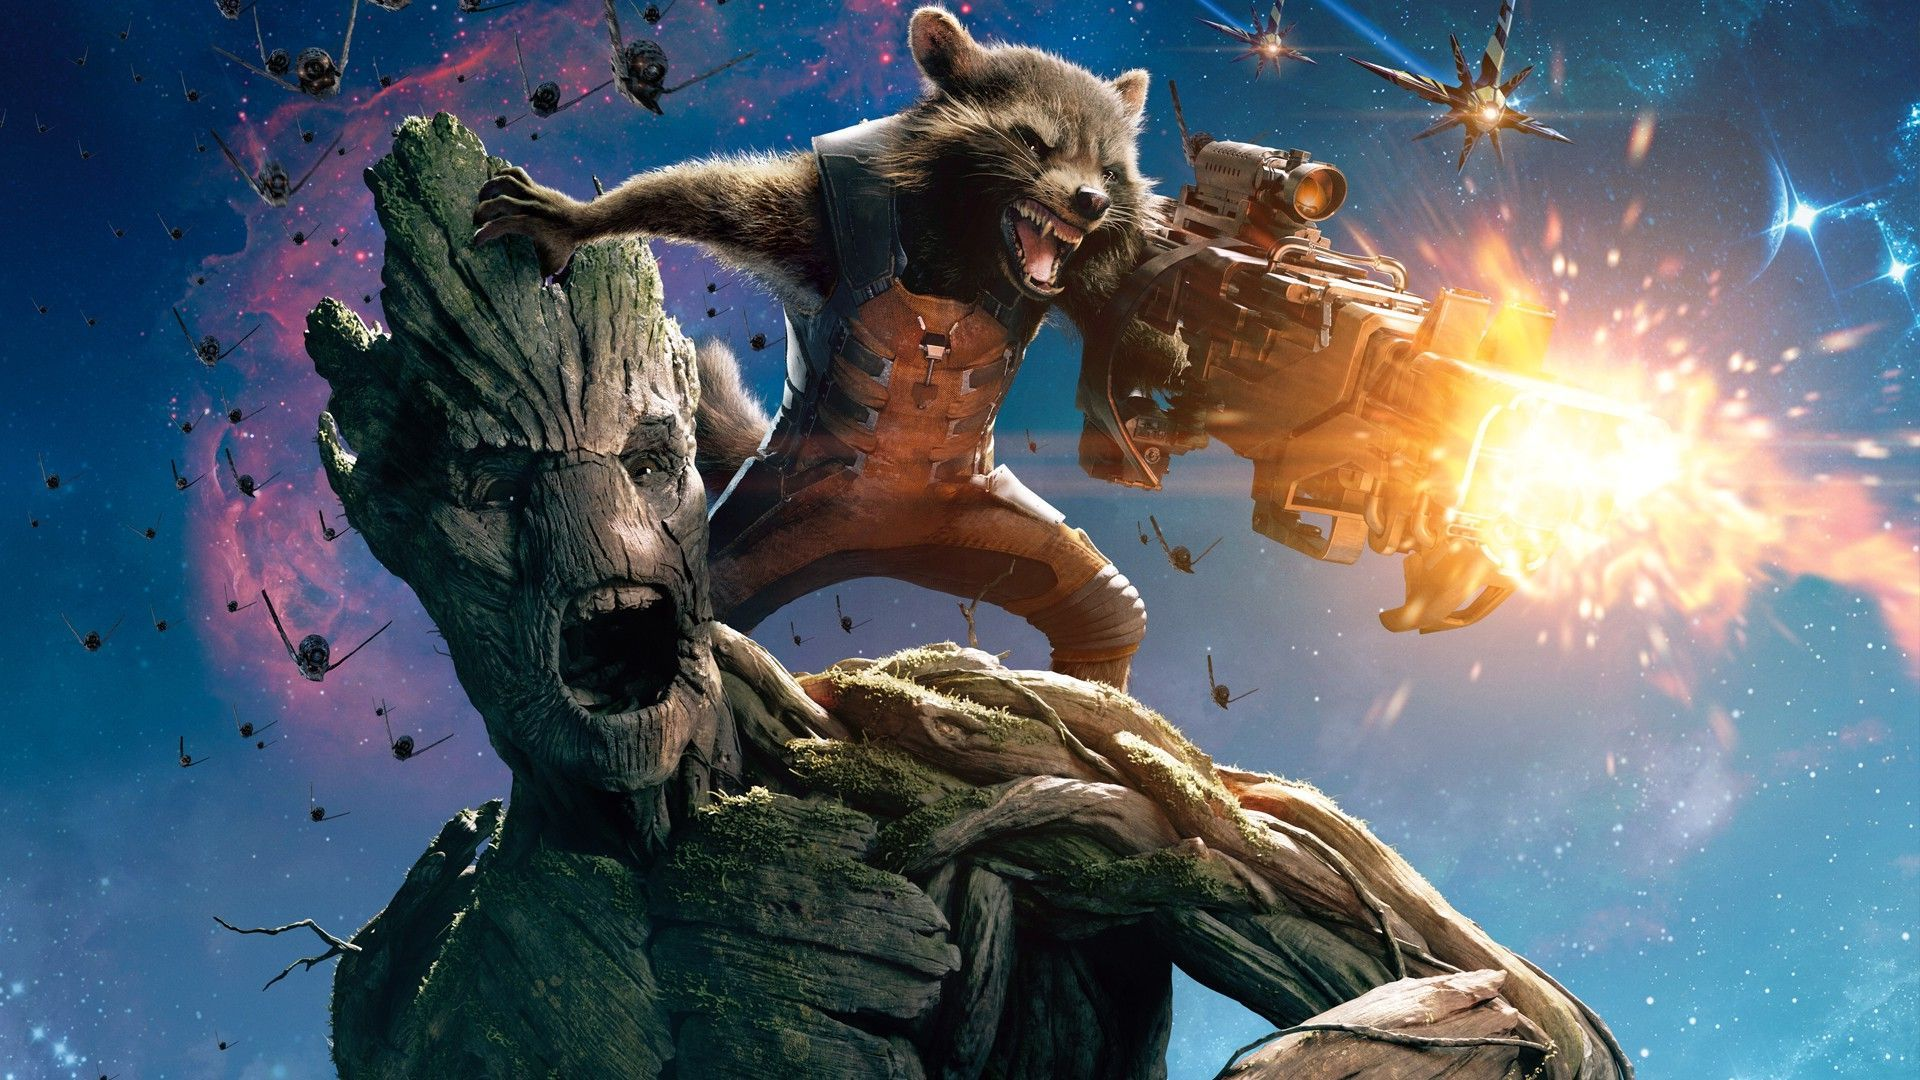 Guardians of the Galaxy wallpaper 34247 1920x1080